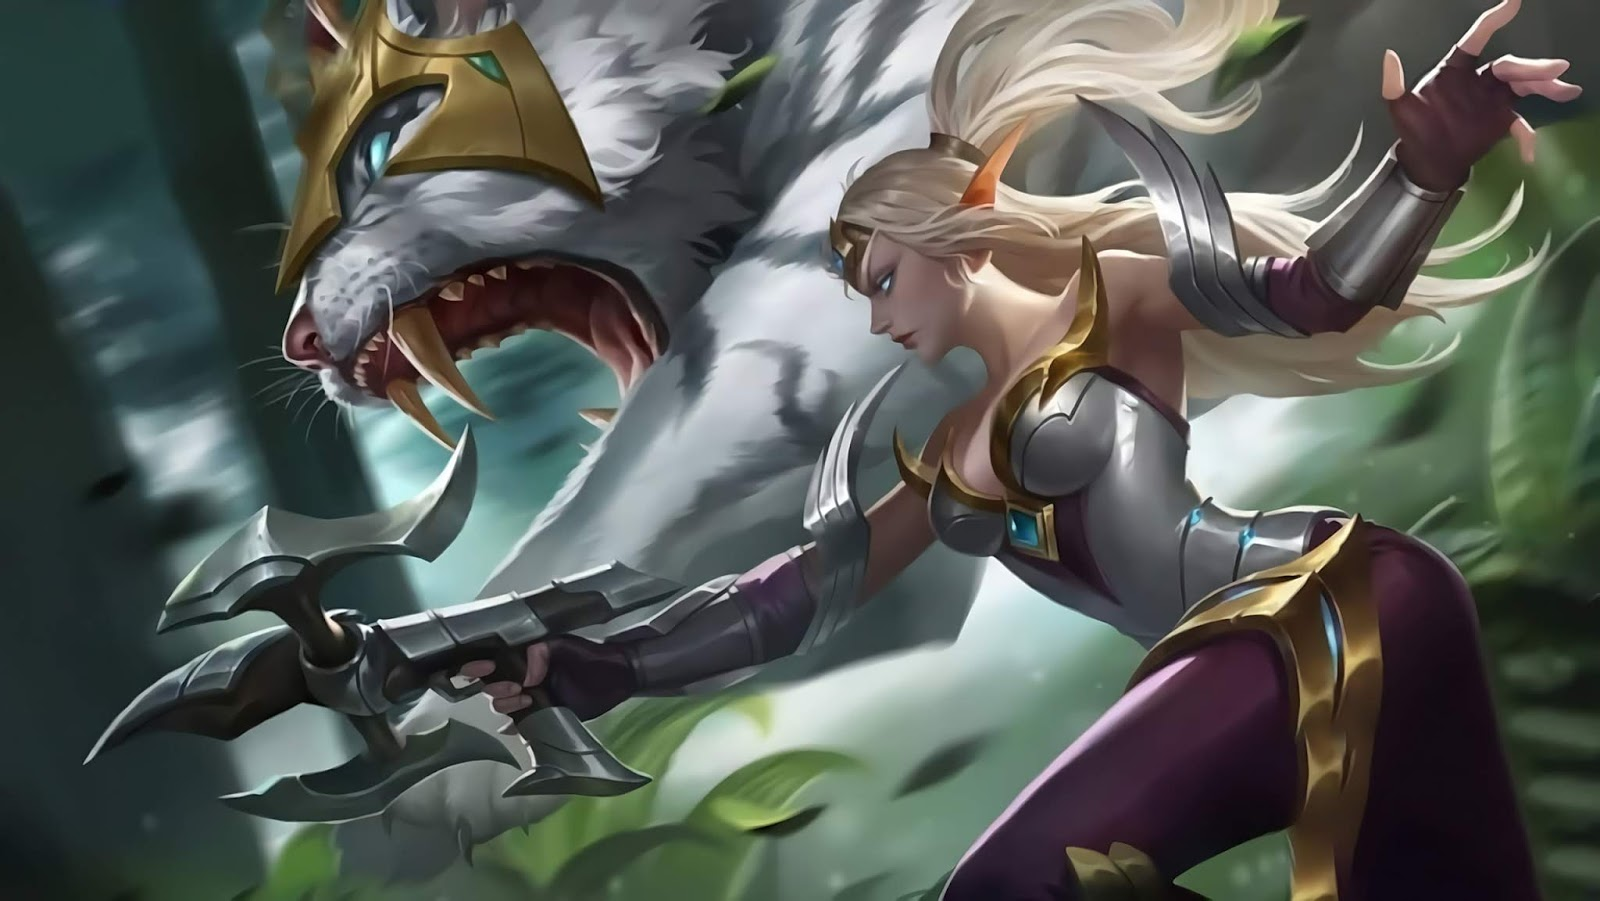 Wallpaper Irithel Silver Cyclone V1 Skin Mobile Legends HD for PC - Hobigame.net